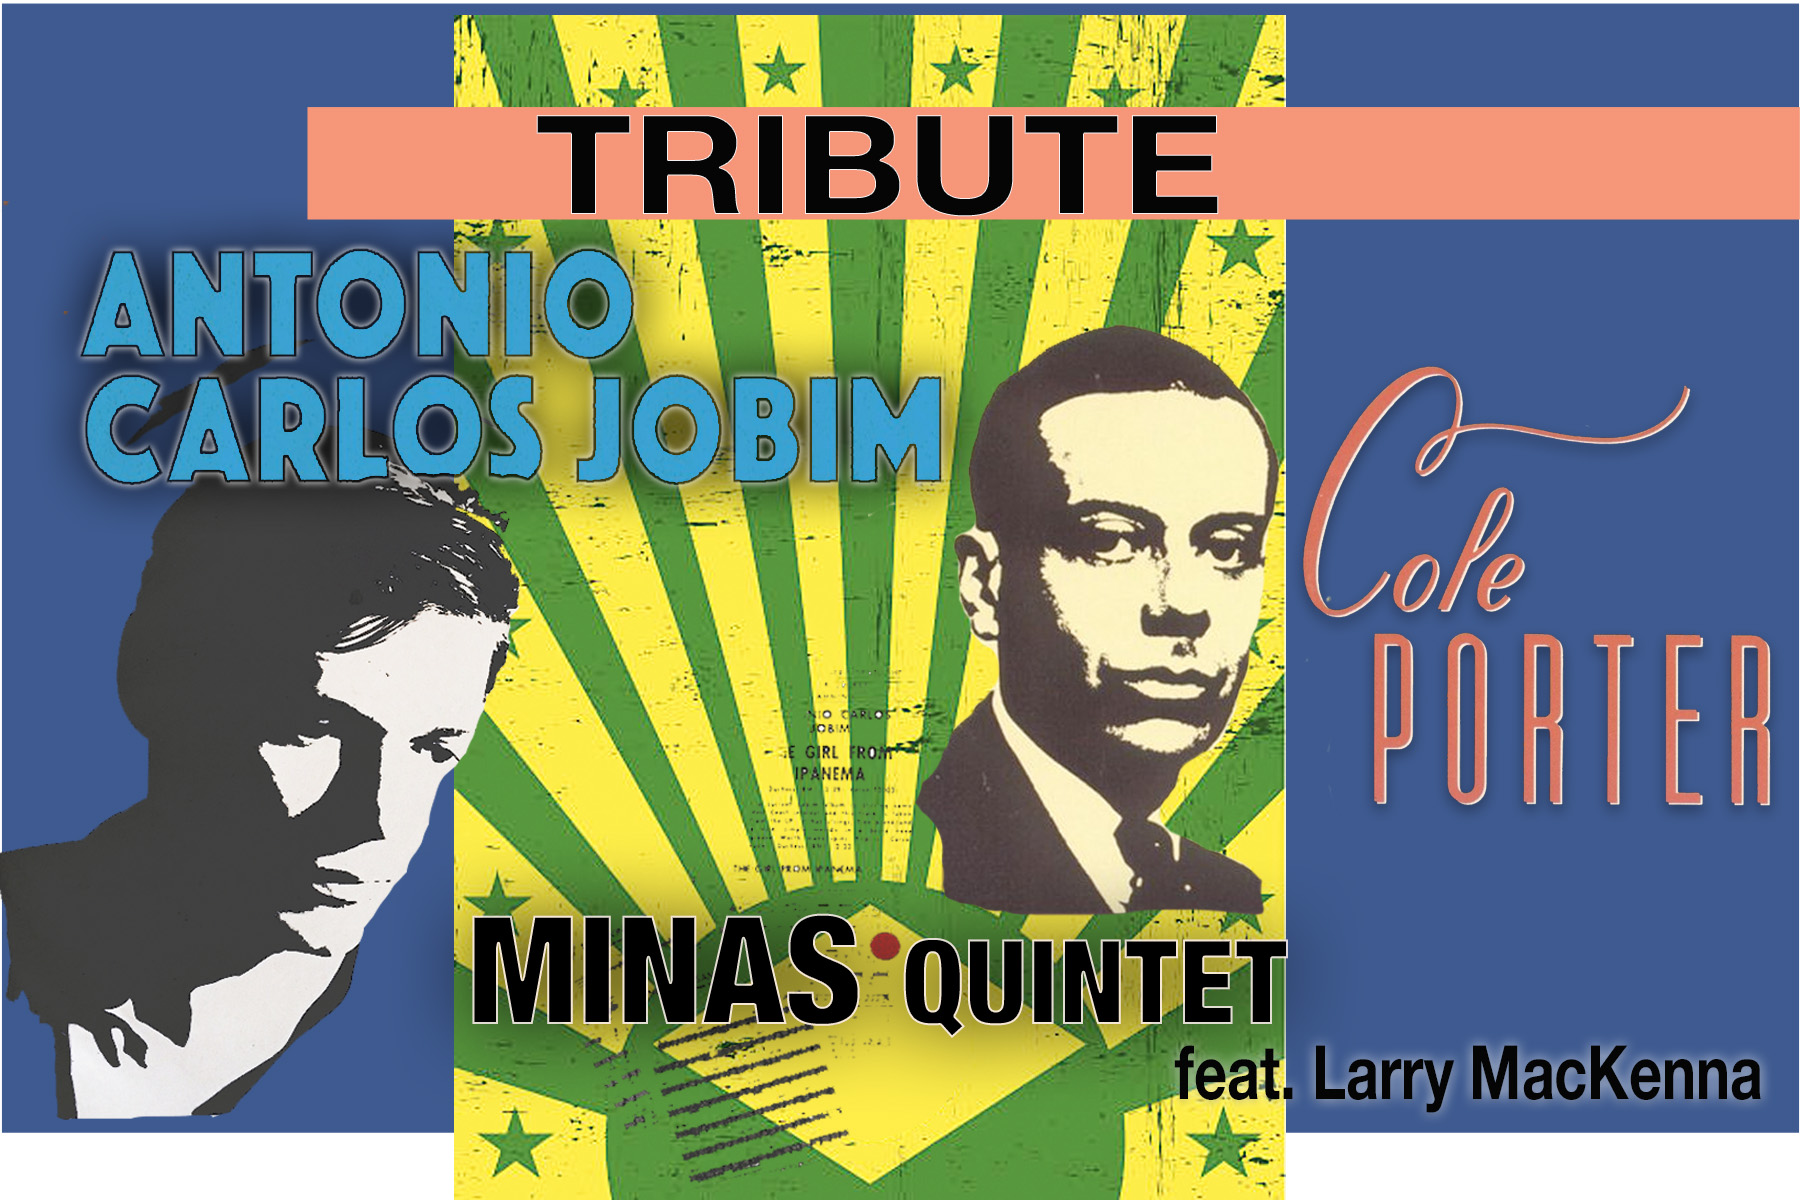 Minas Quintet with Larry McKenna